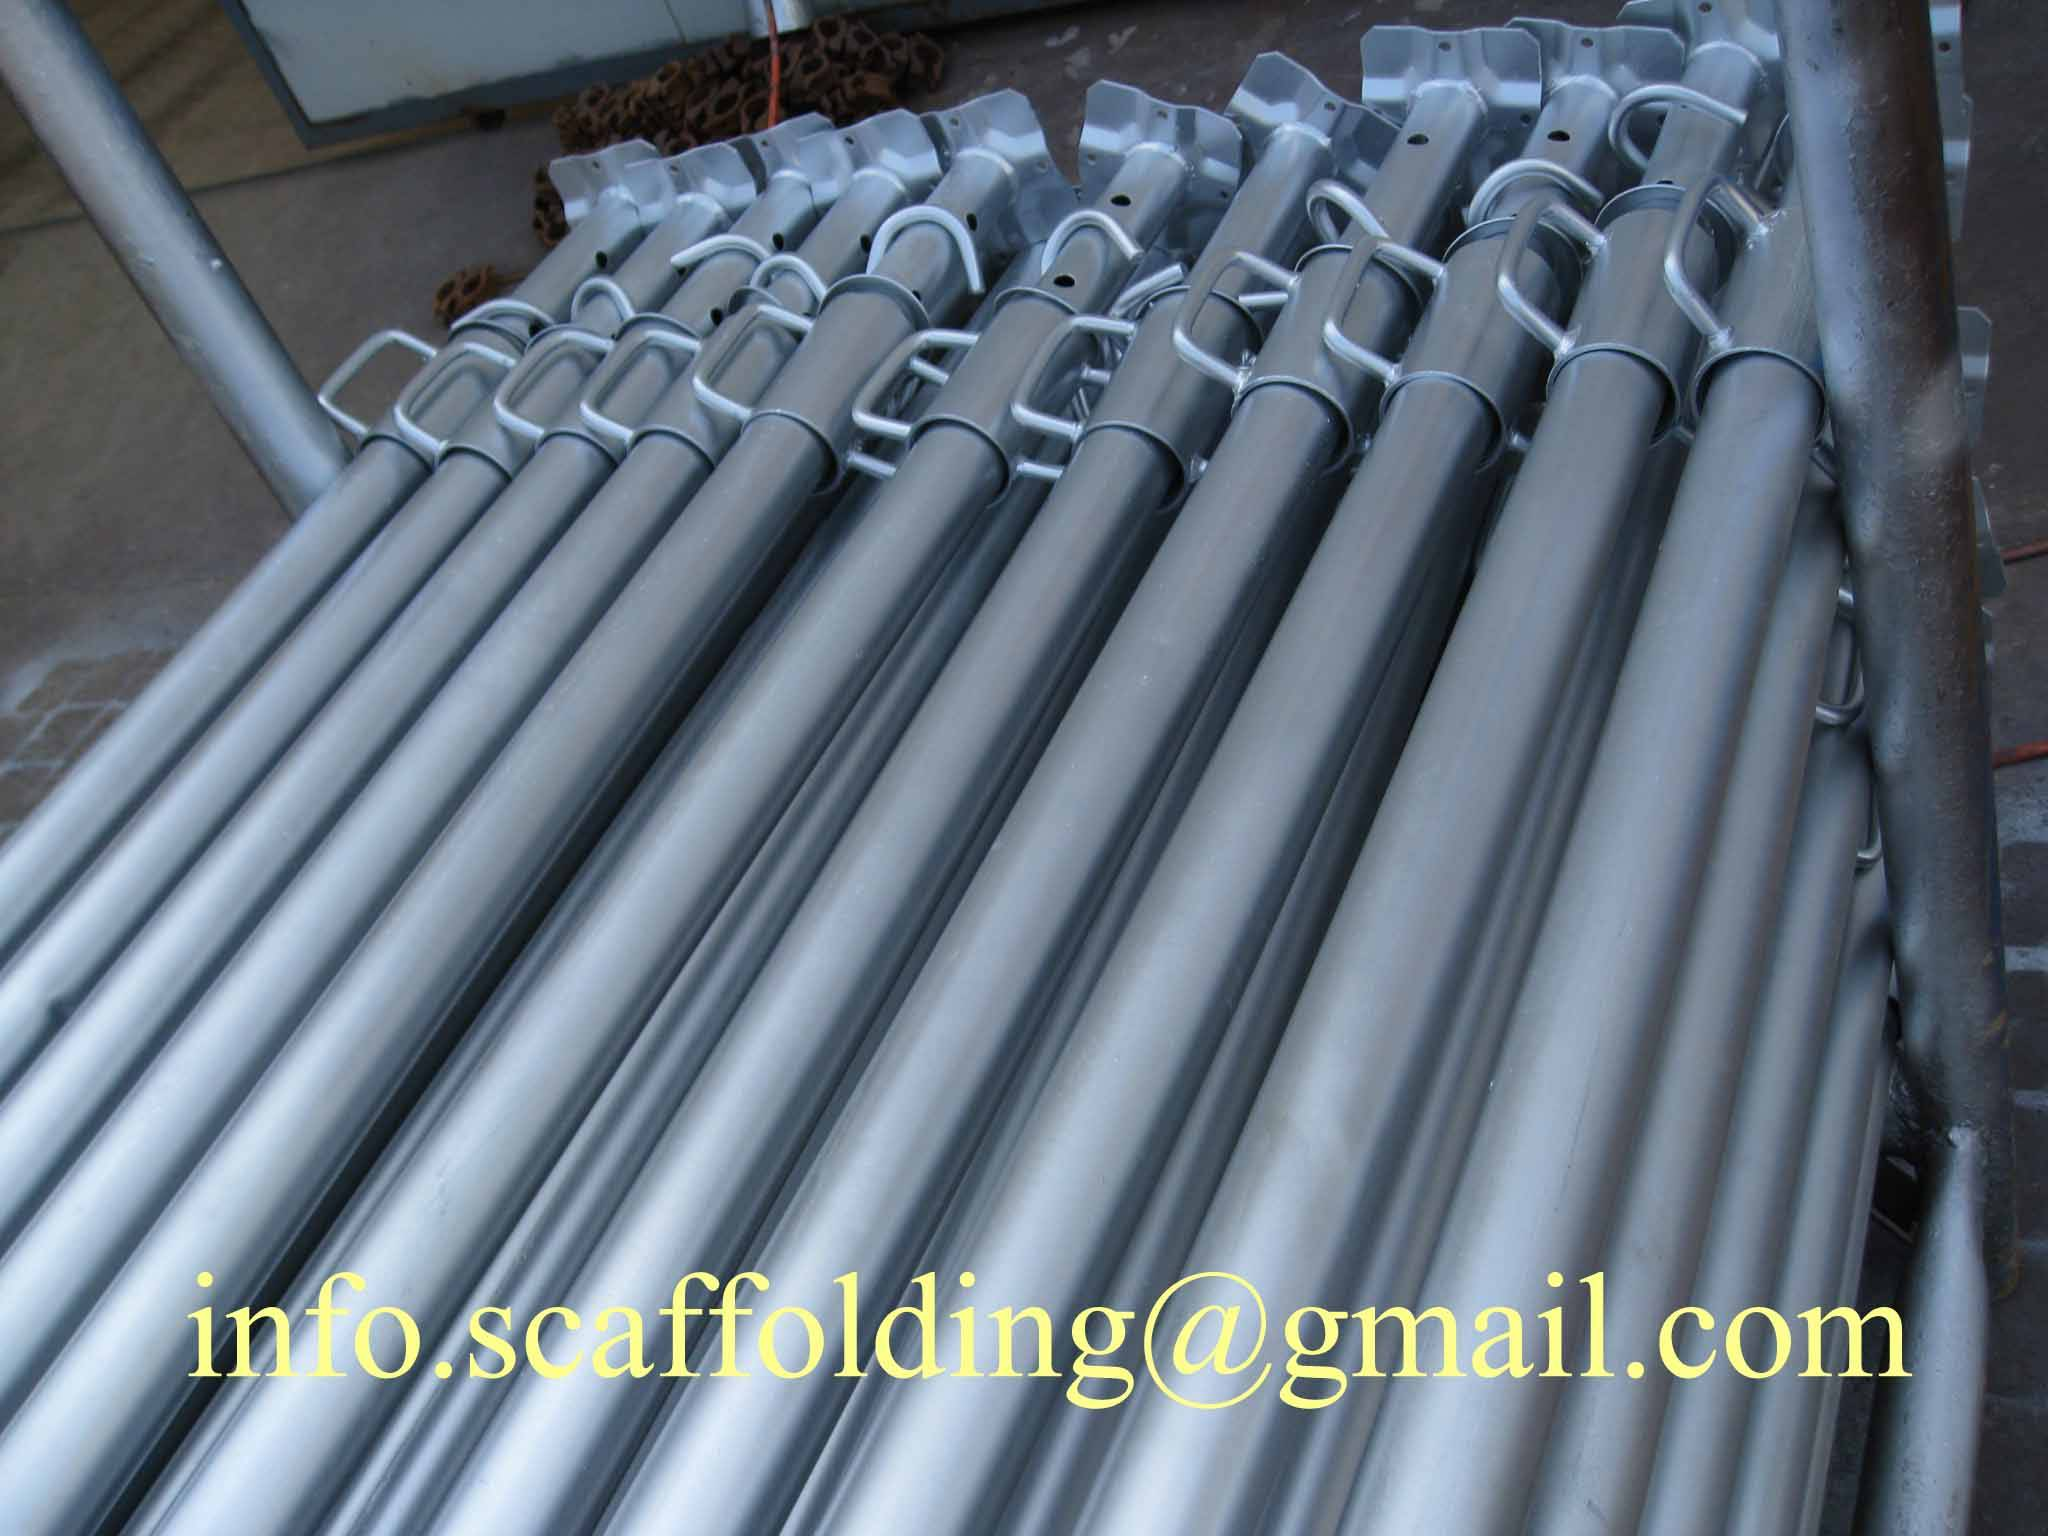 Sell Scaffolding Props